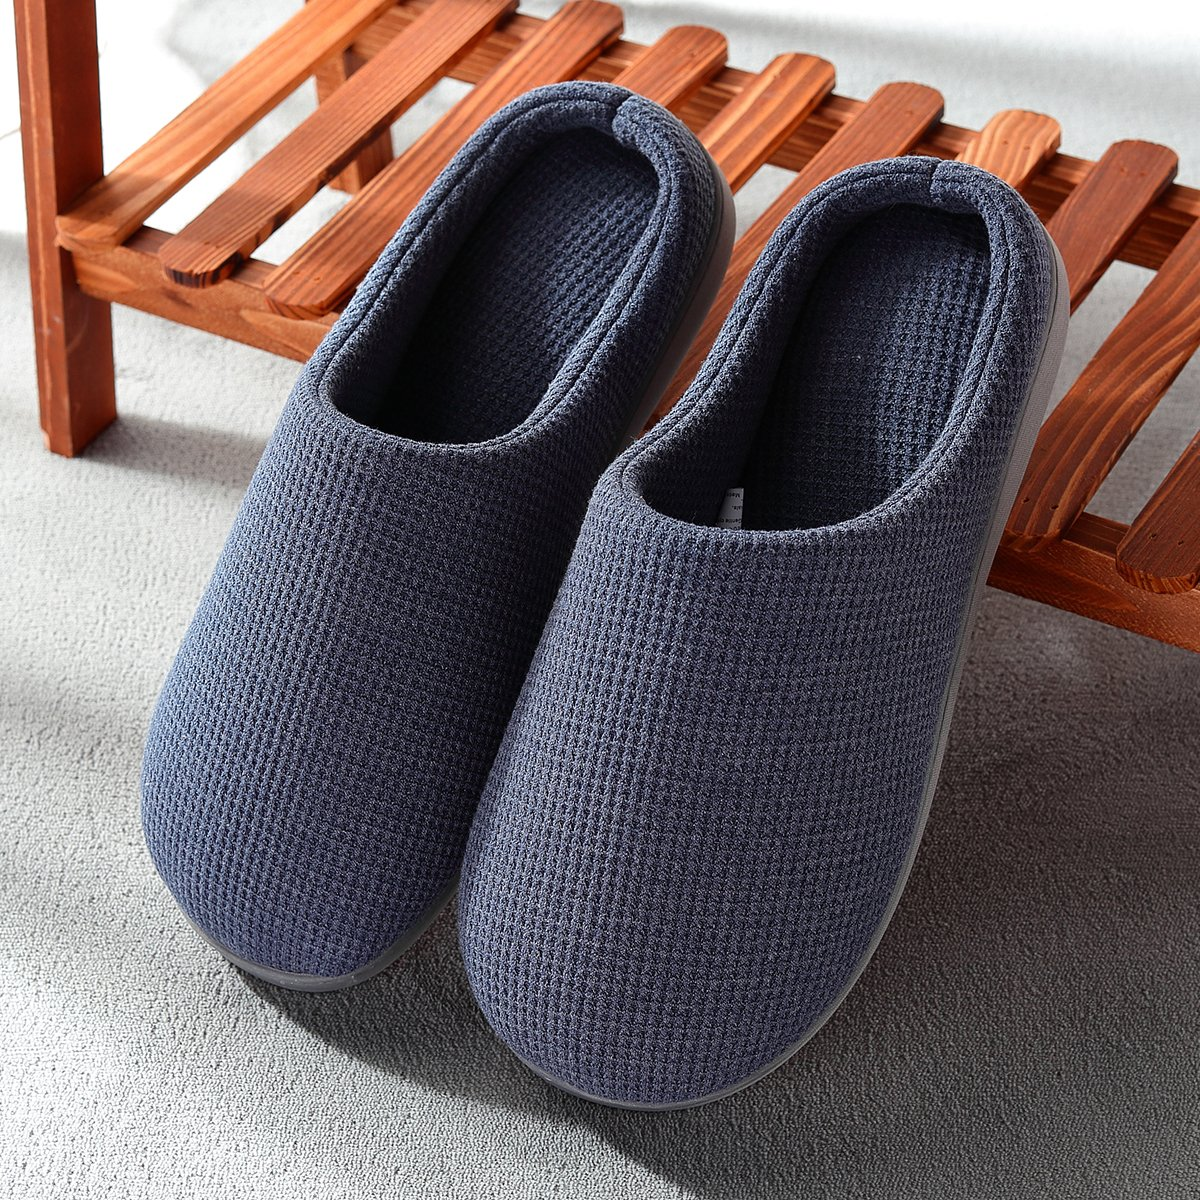 Harrms Mens House Slippers Indoor Outdoor Slip On Shoes Memory Foam Anti-Slip Two-Tone Mules Clogs for Men